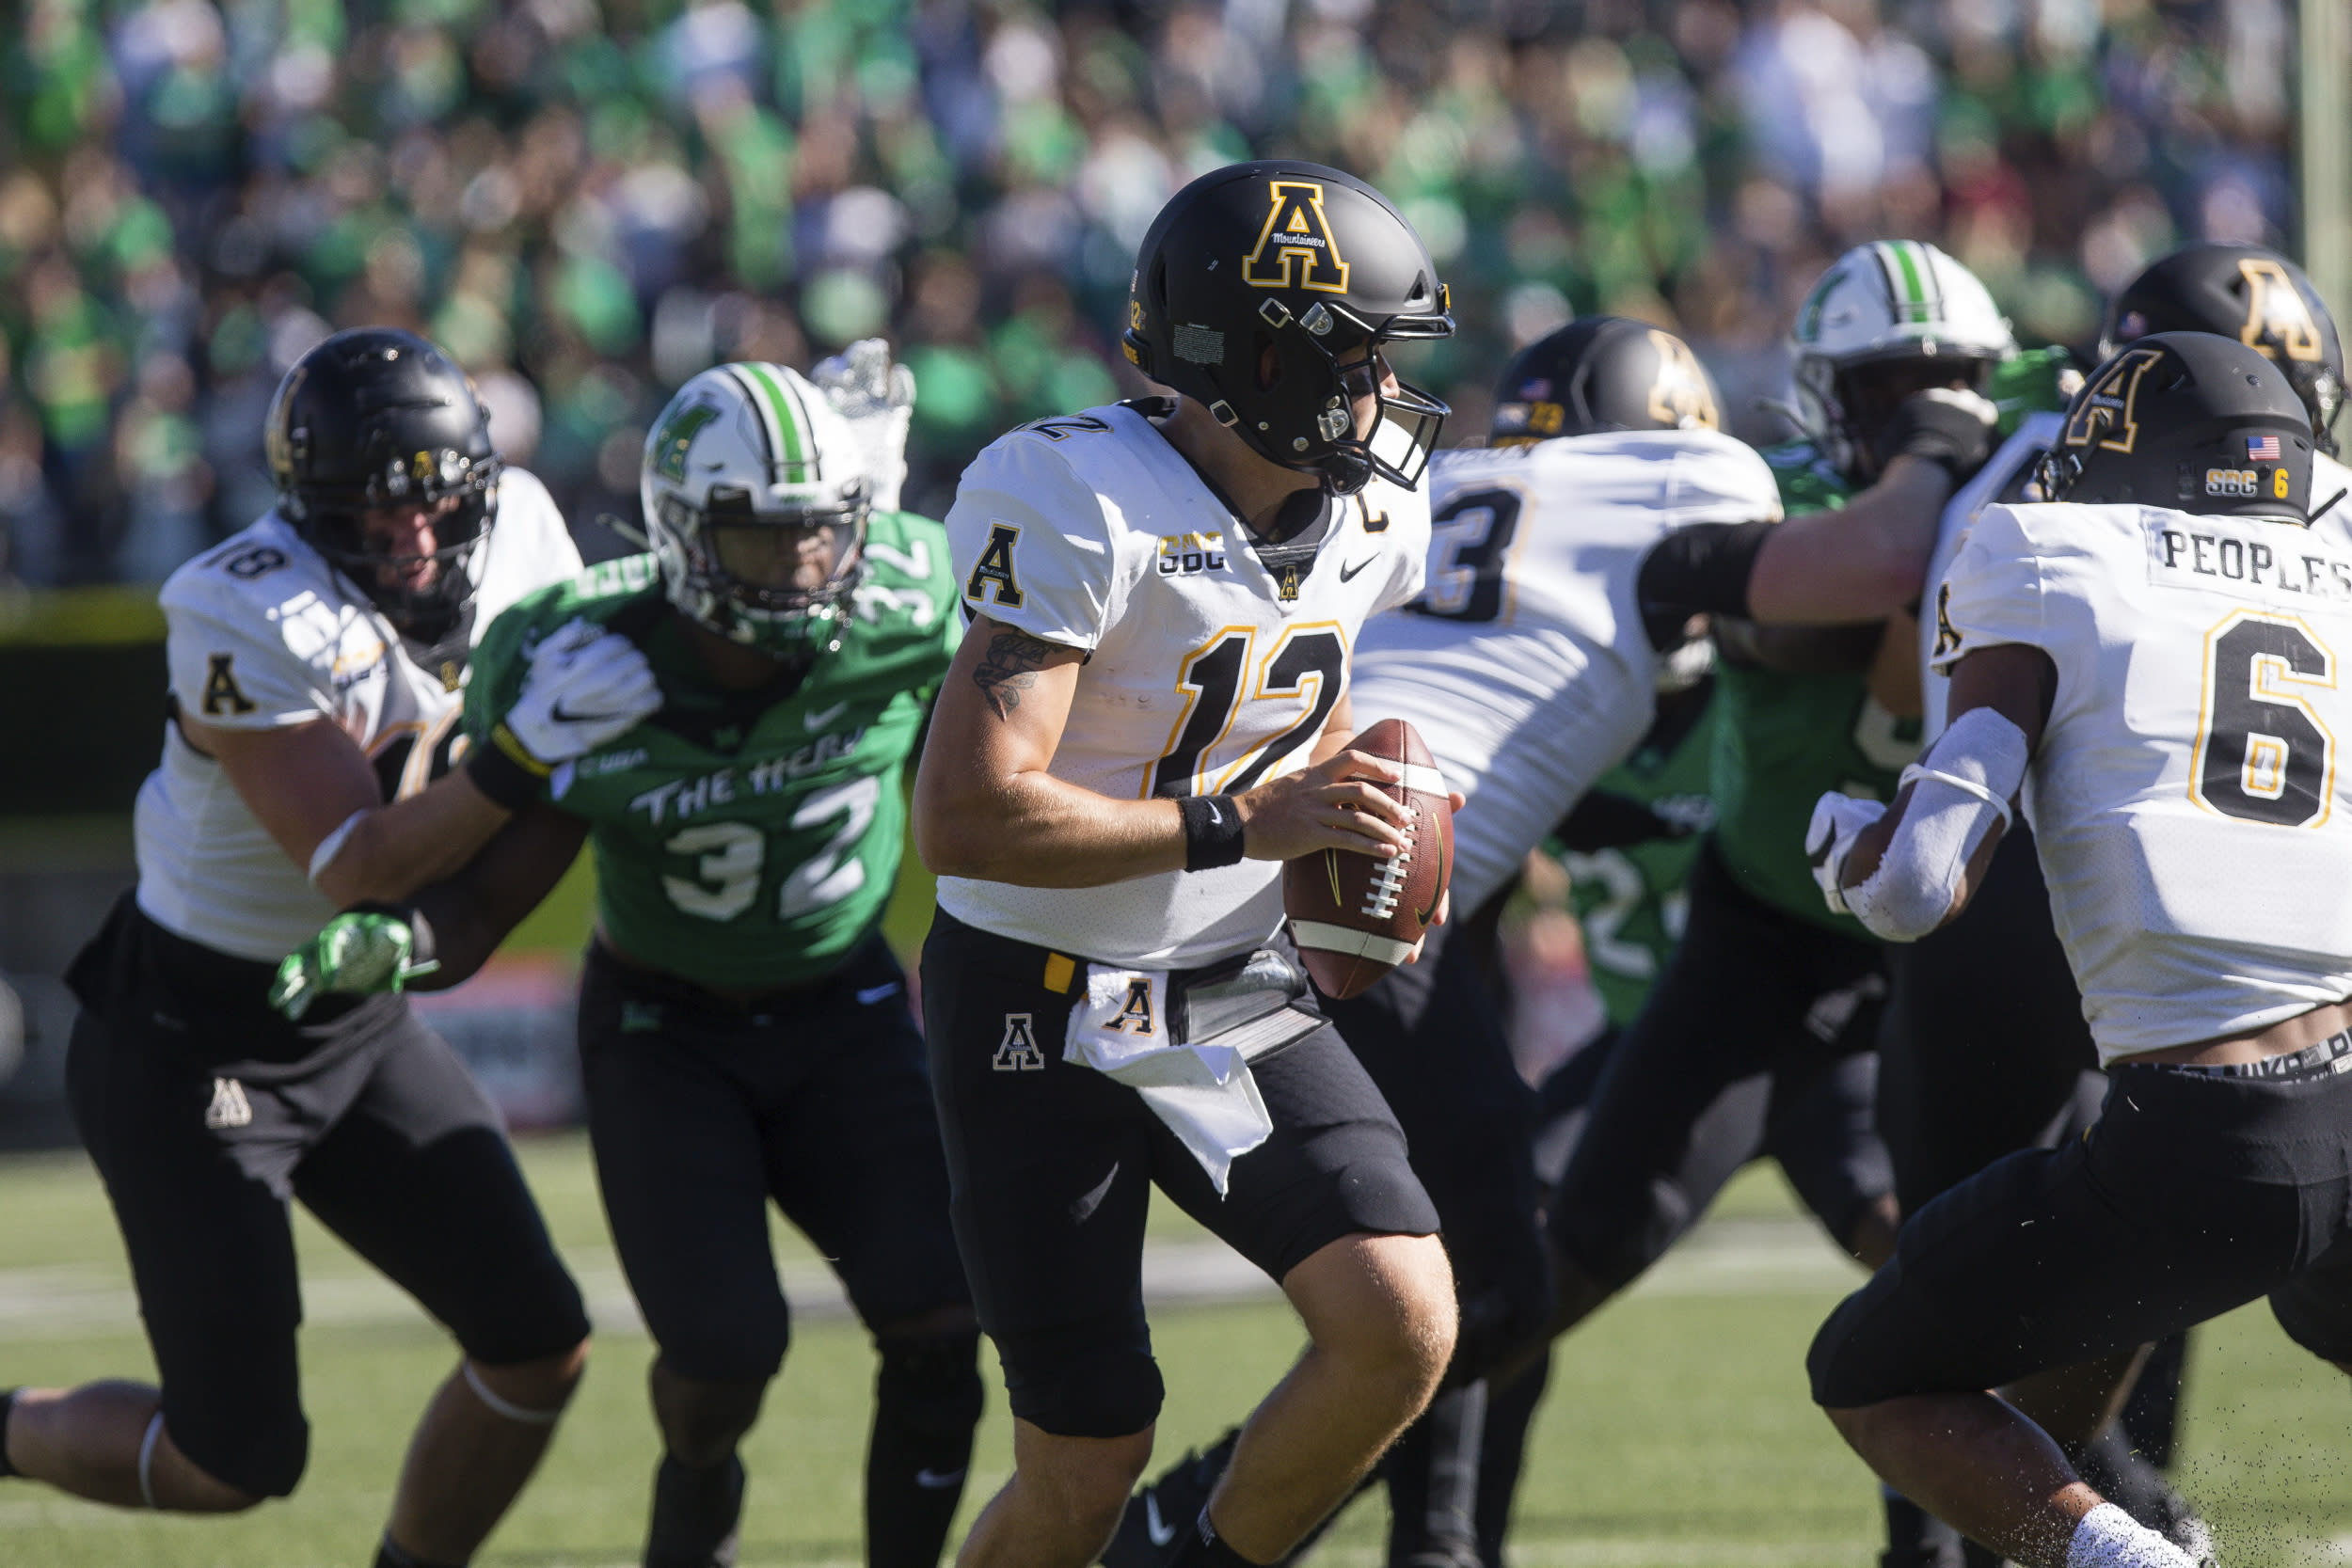 Appalachian State quarterback Zac Thomas (12) drops back to pass as they take on Marshall during an NCAA college football game Saturday, Sept. 19, 2020, in Huntington, W.Va. (Sholten Singer/The Herald-Dispatch via AP)